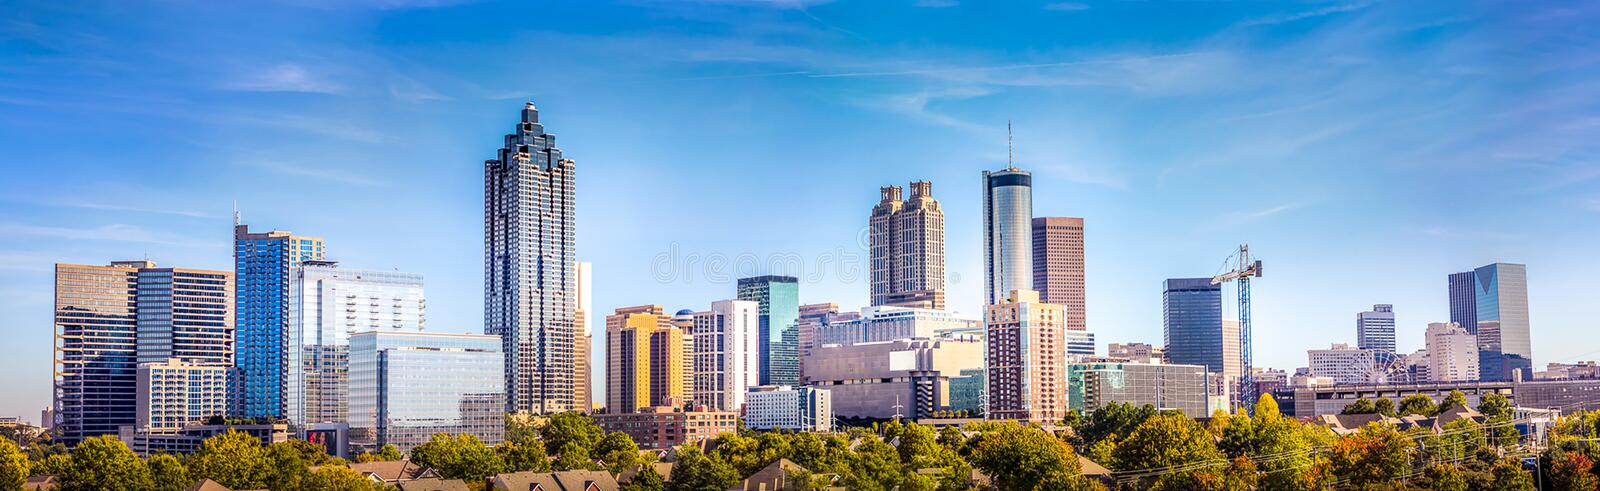 Dowtown Atlanta Georgia Skyline arkivfoto